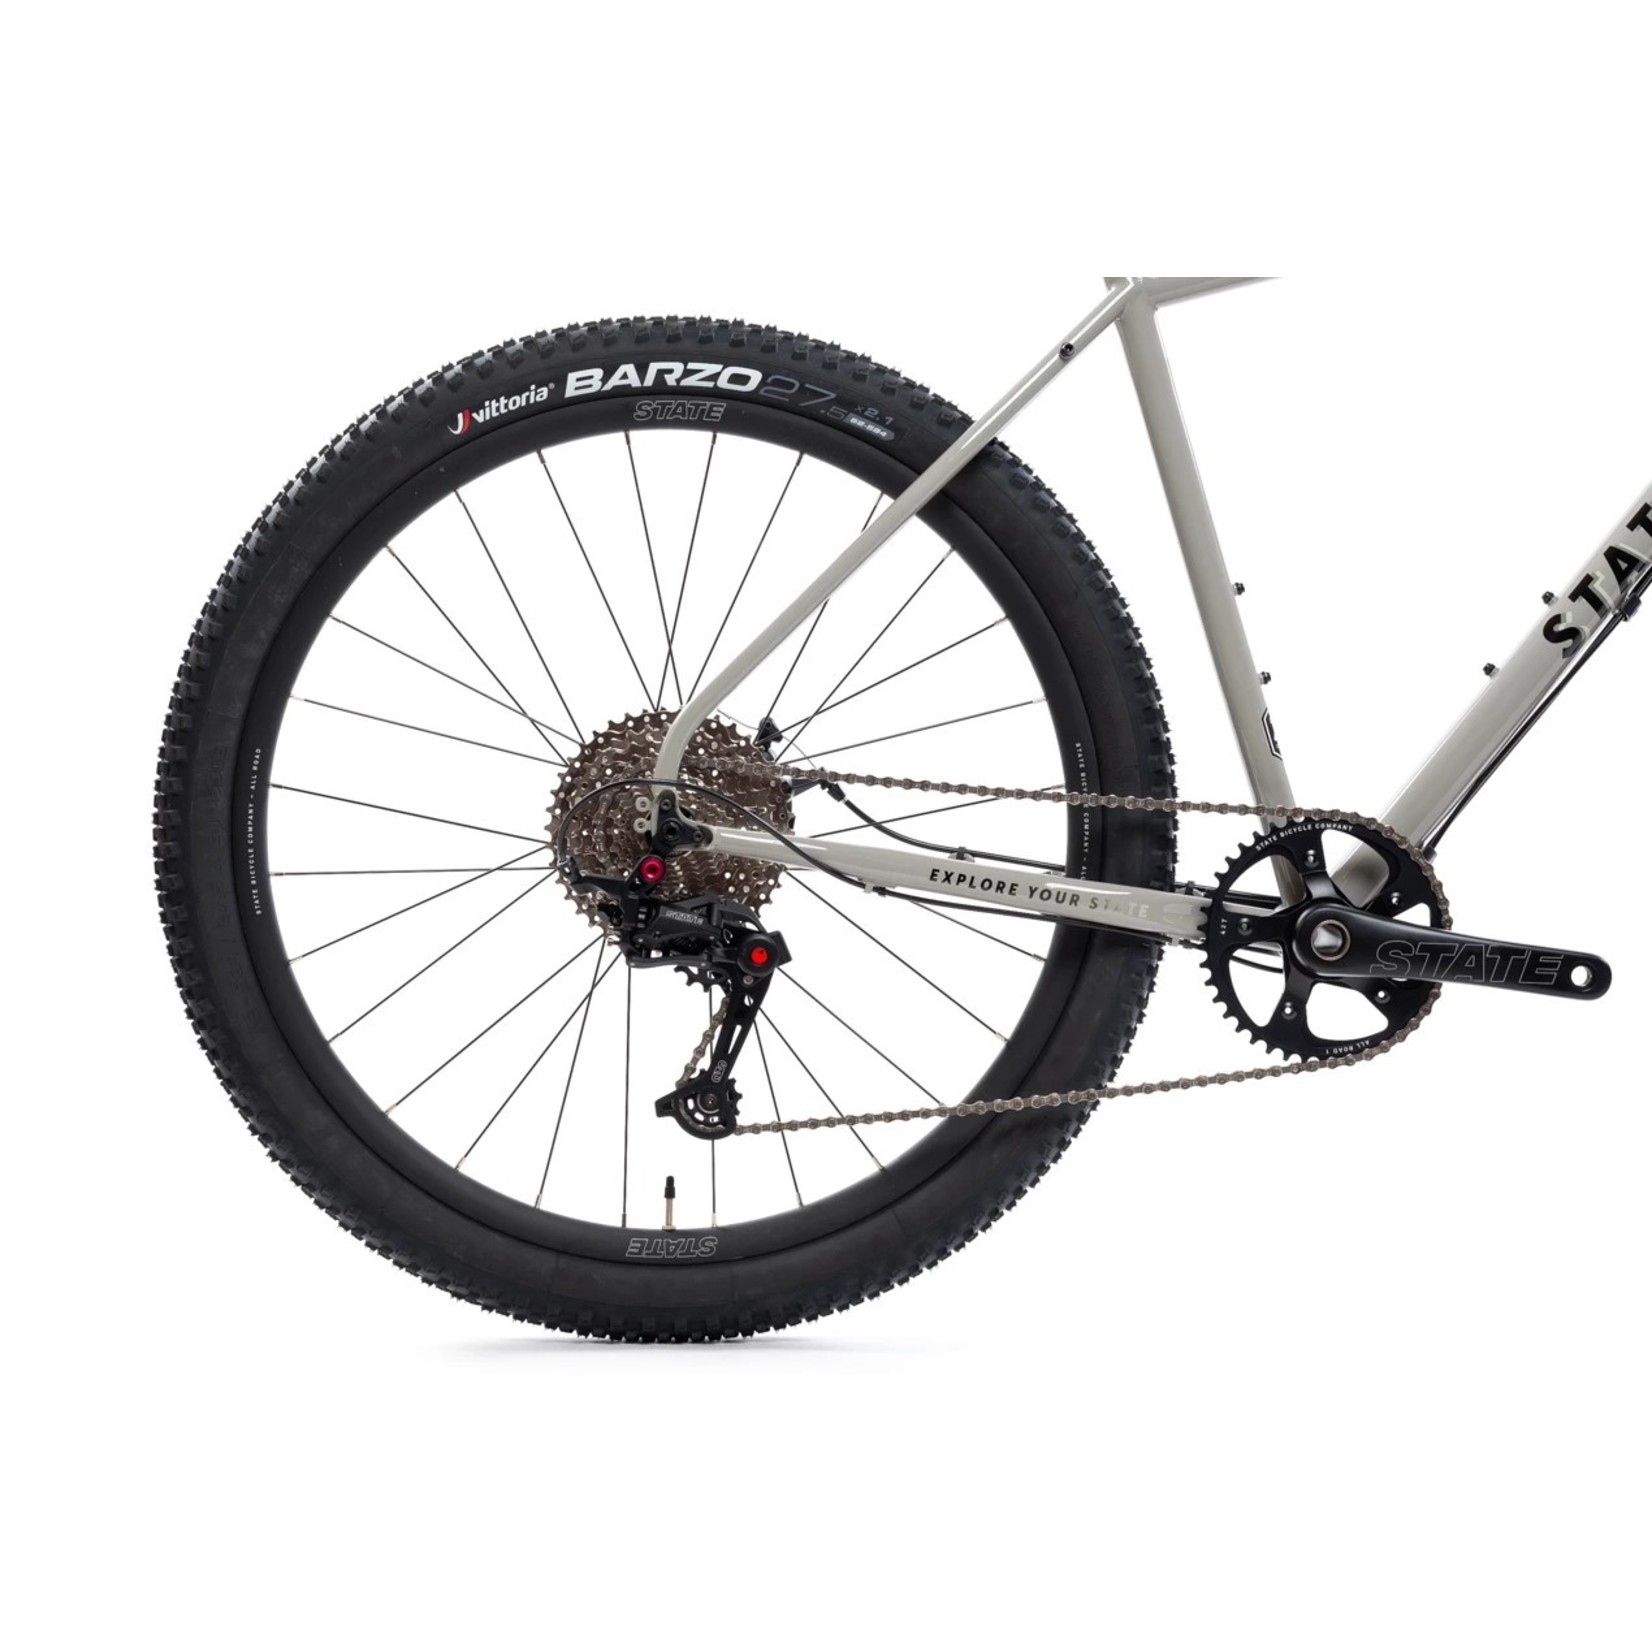 State Bicycle Co. 4130 All Road Grey